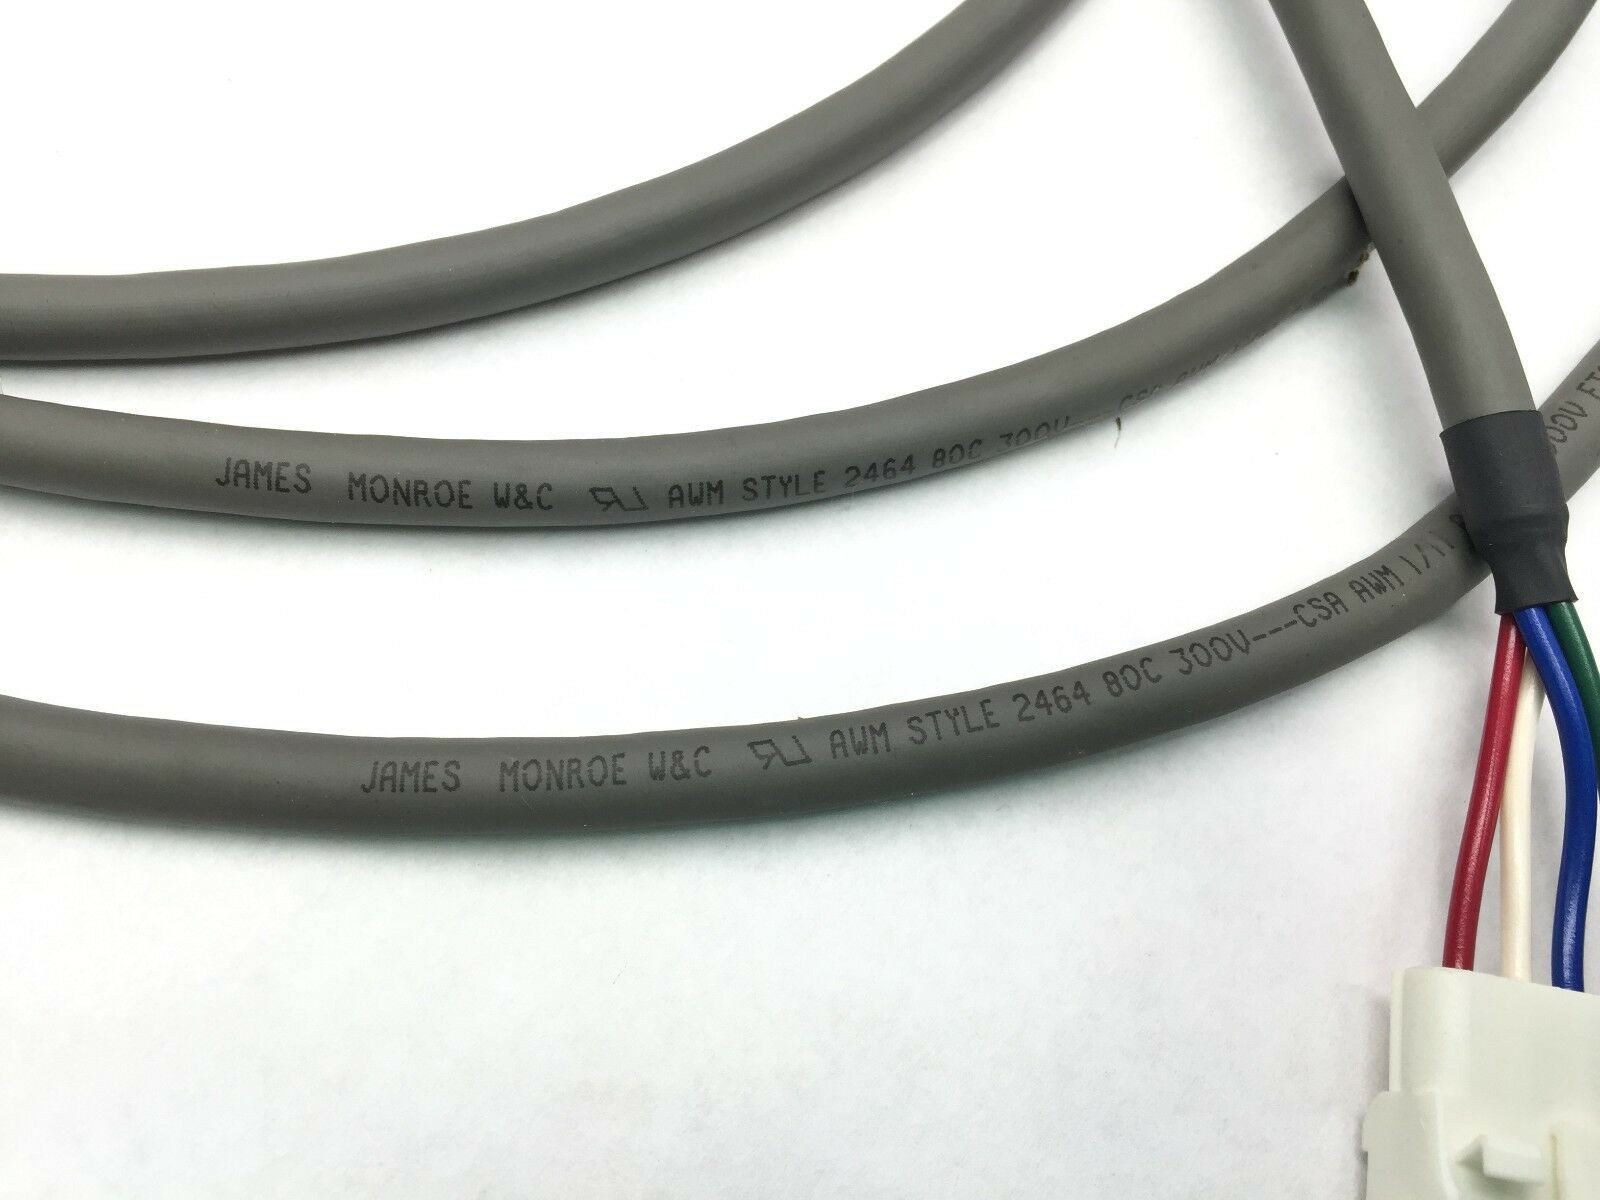 Fantastic Anixter Wire And Cable Catalog Photos - Wiring Standart ...